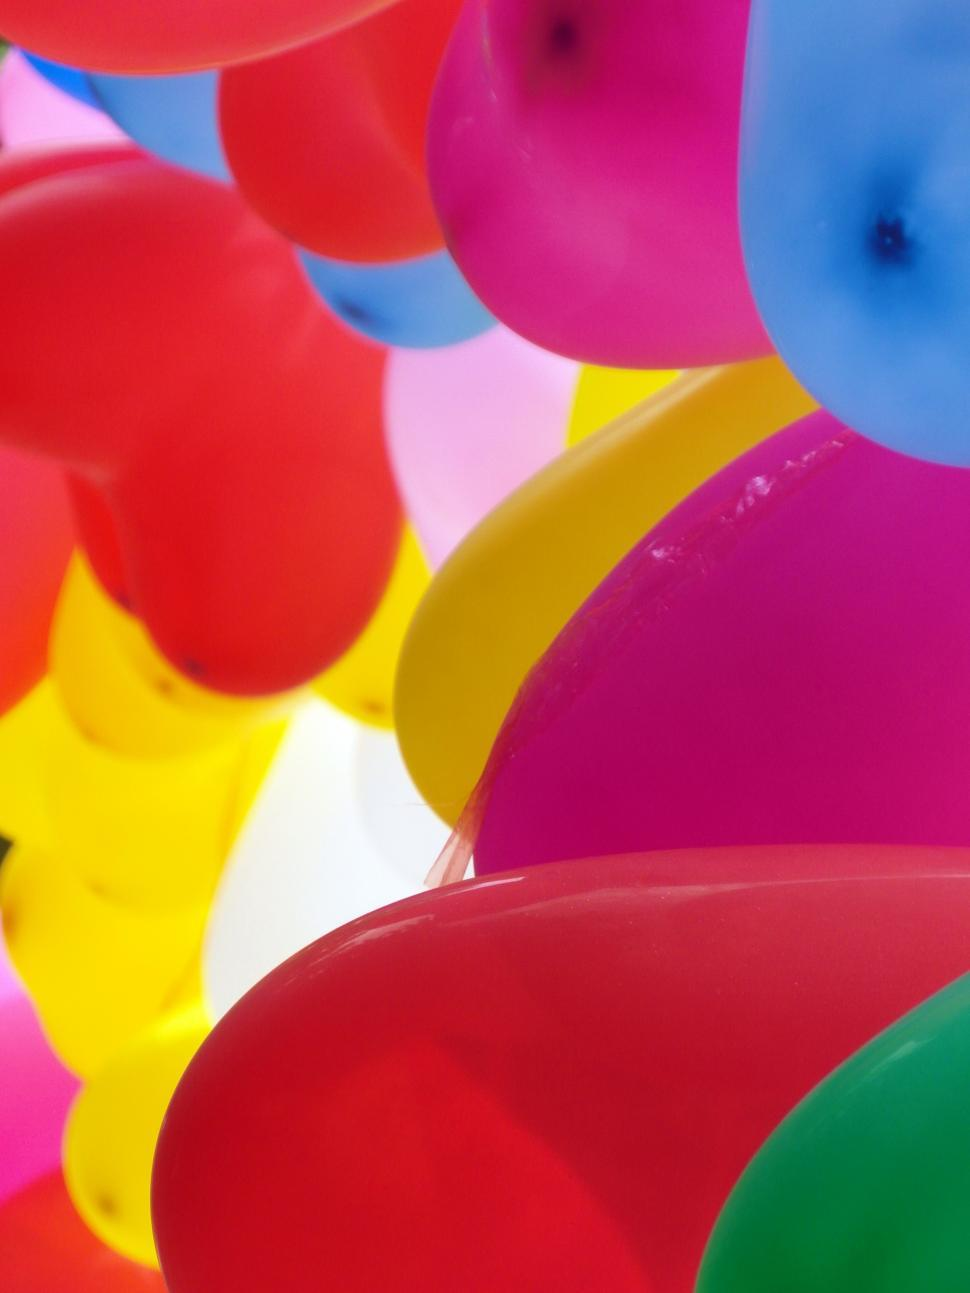 Download Free Stock HD Photo of Group of Colorful Balloons Online